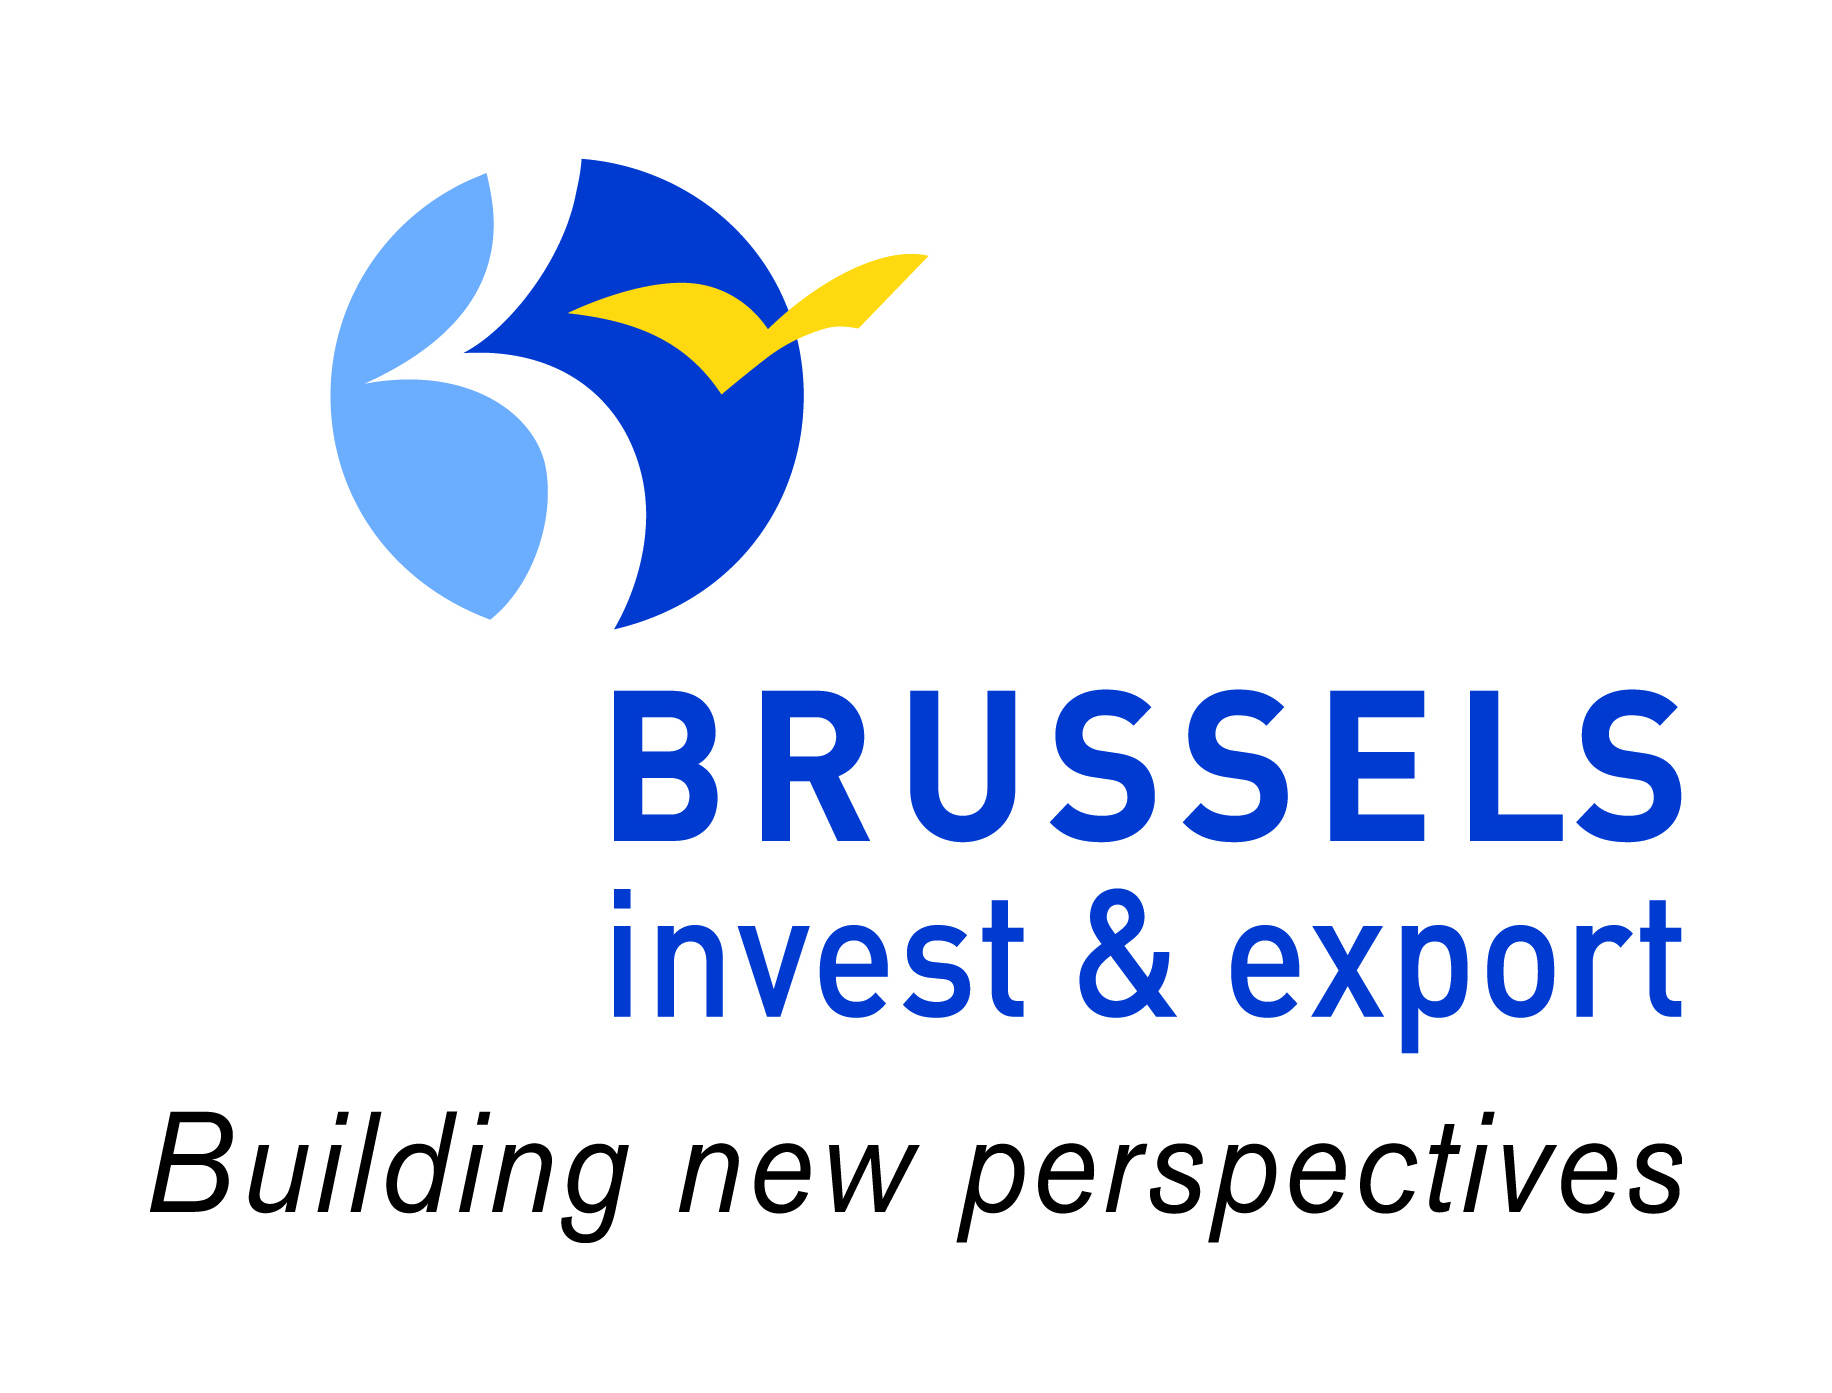 Brussels Invest & Export is the foreign trade and investment agency of the Brussels-Capital Region. We help our companies to export worldwide and foreign companies to settle down in Brussels.